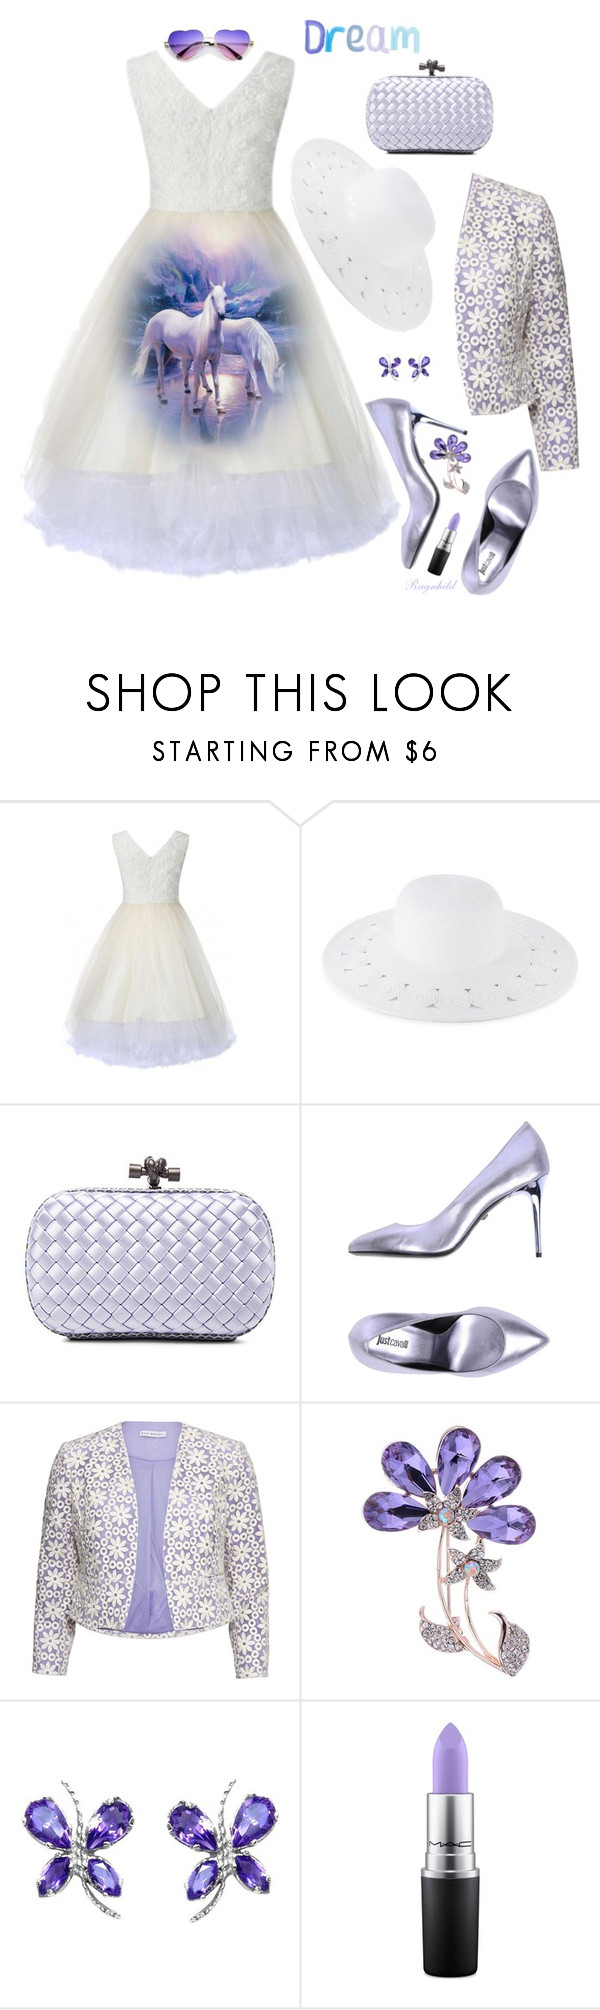 """Dreamy Dress"" by ragnh-mjos ❤ liked on Polyvore featuring San Diego Hat Co., Bottega Veneta, Just Cavalli, Gina Bacconi and MAC Cosmetics"